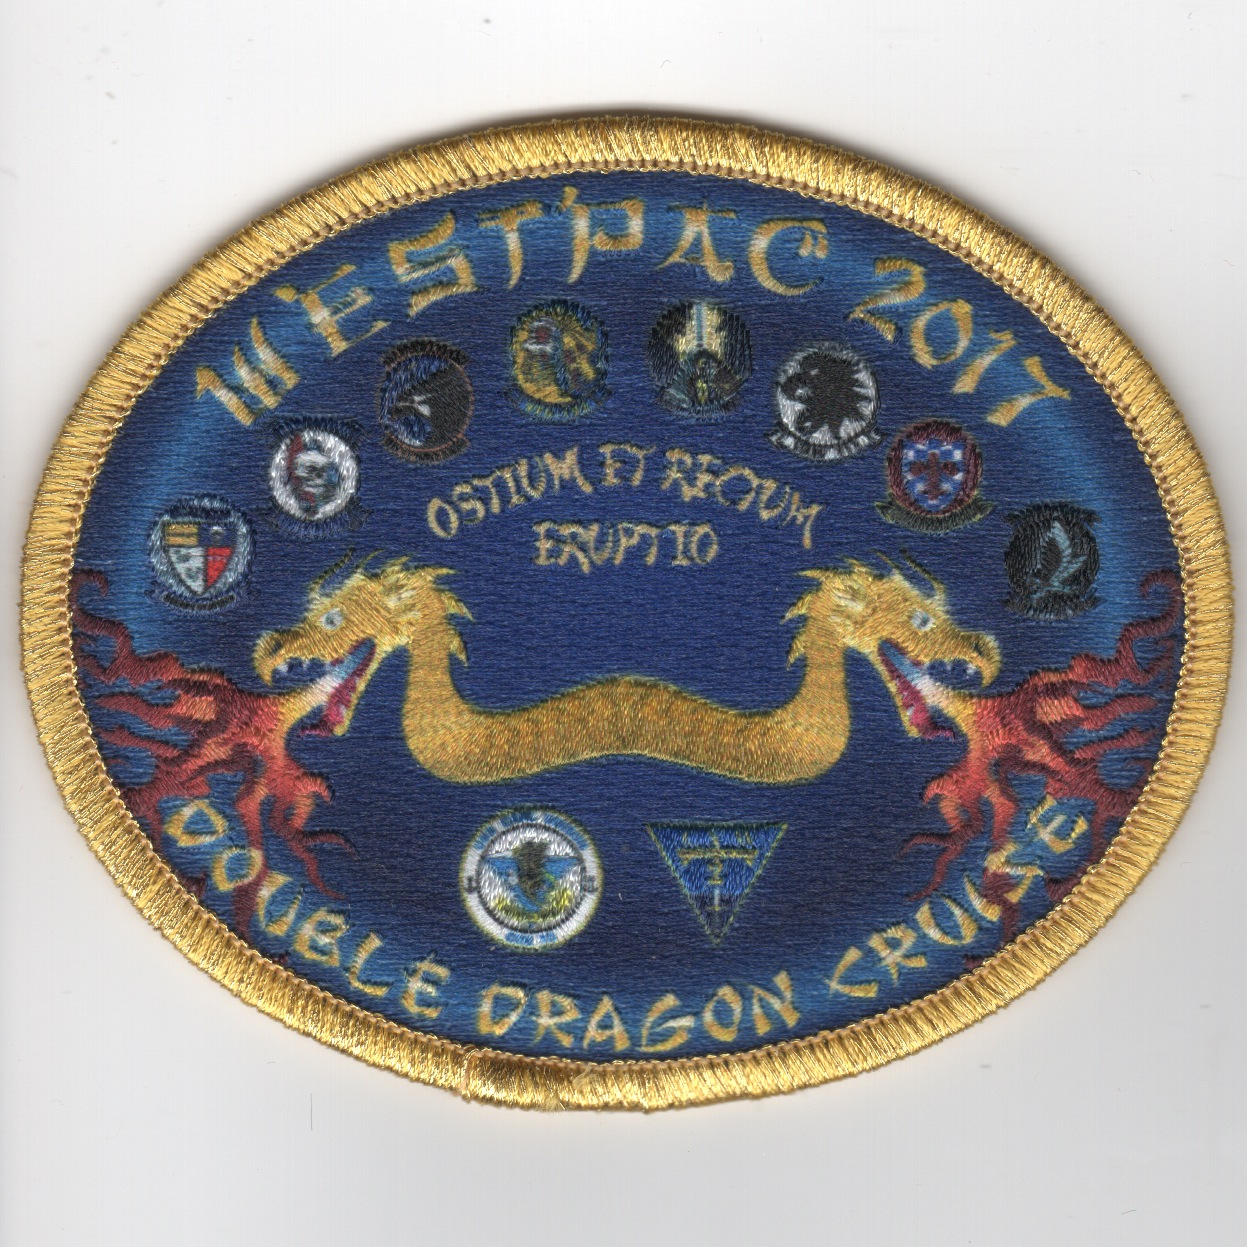 VFA-192 2017 'Double Dragon' Cruise Patch